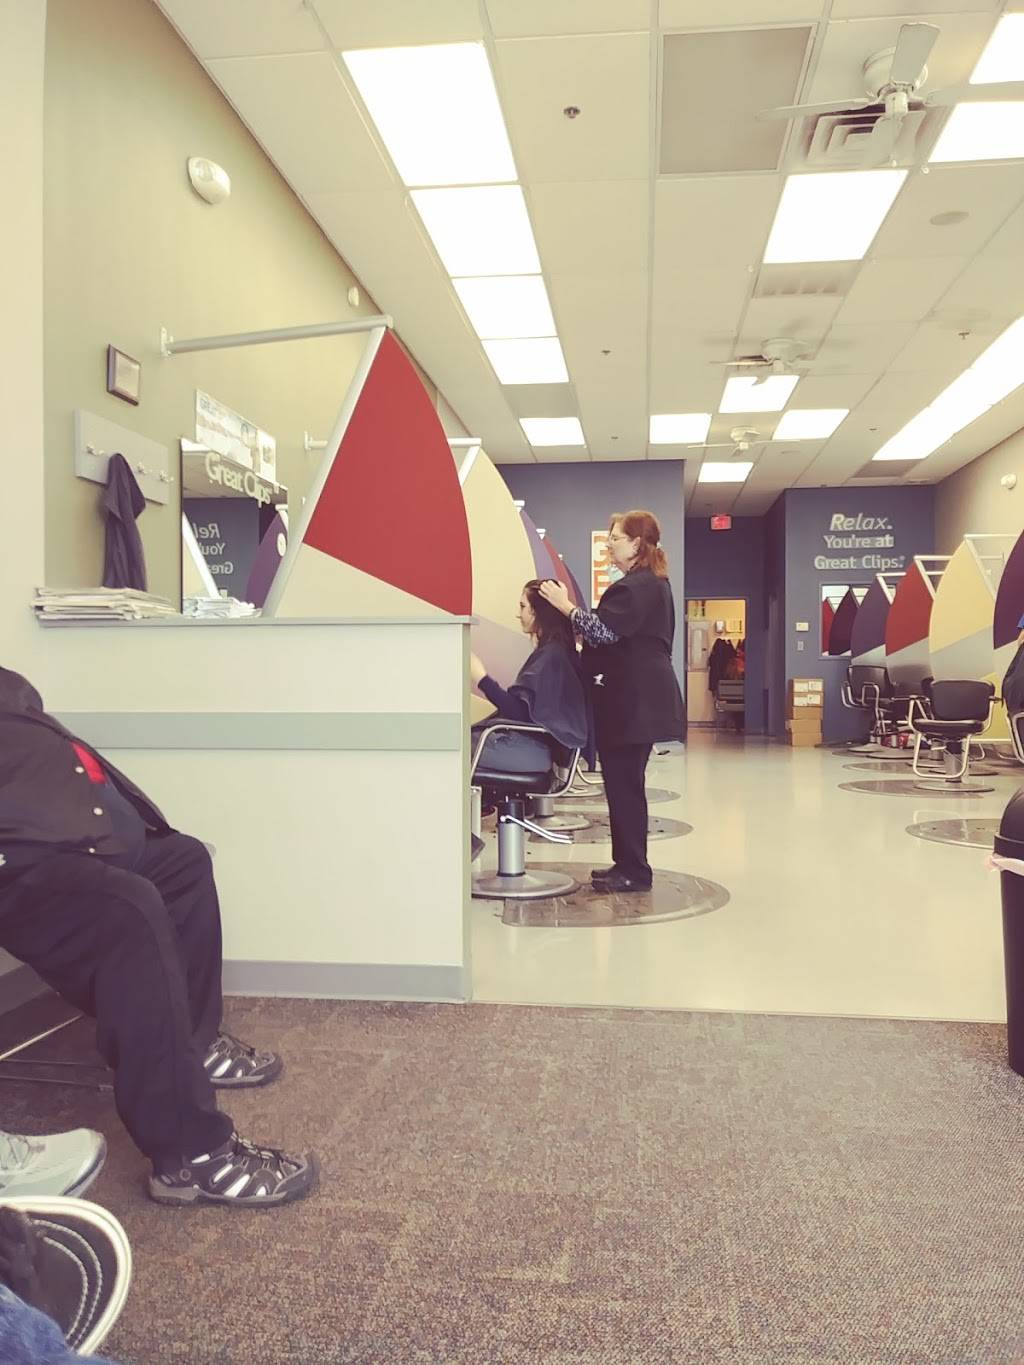 Great Clips - hair care  | Photo 8 of 8 | Address: 900 N Blue Mound Rd Ste 164, Saginaw, TX 76131, USA | Phone: (817) 847-7570